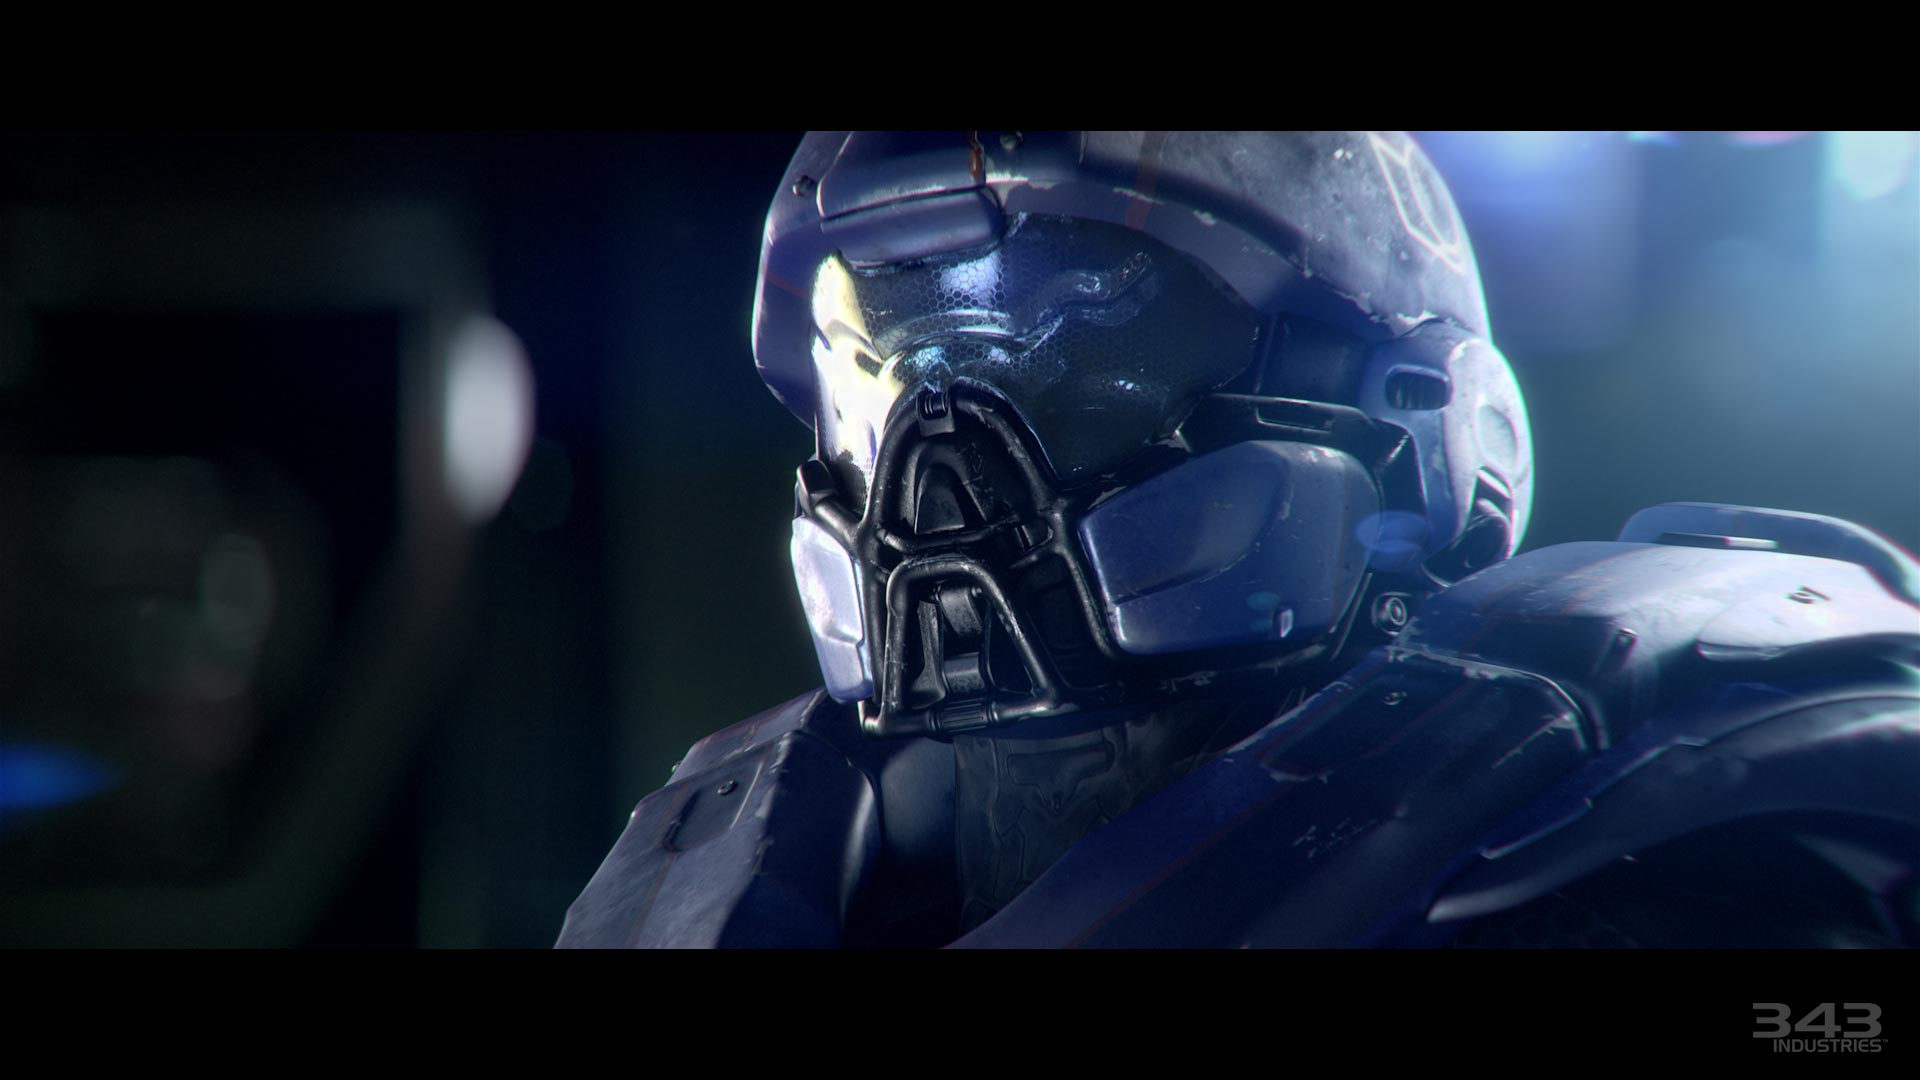 Halo 5 Pictures to pin on Pinterest